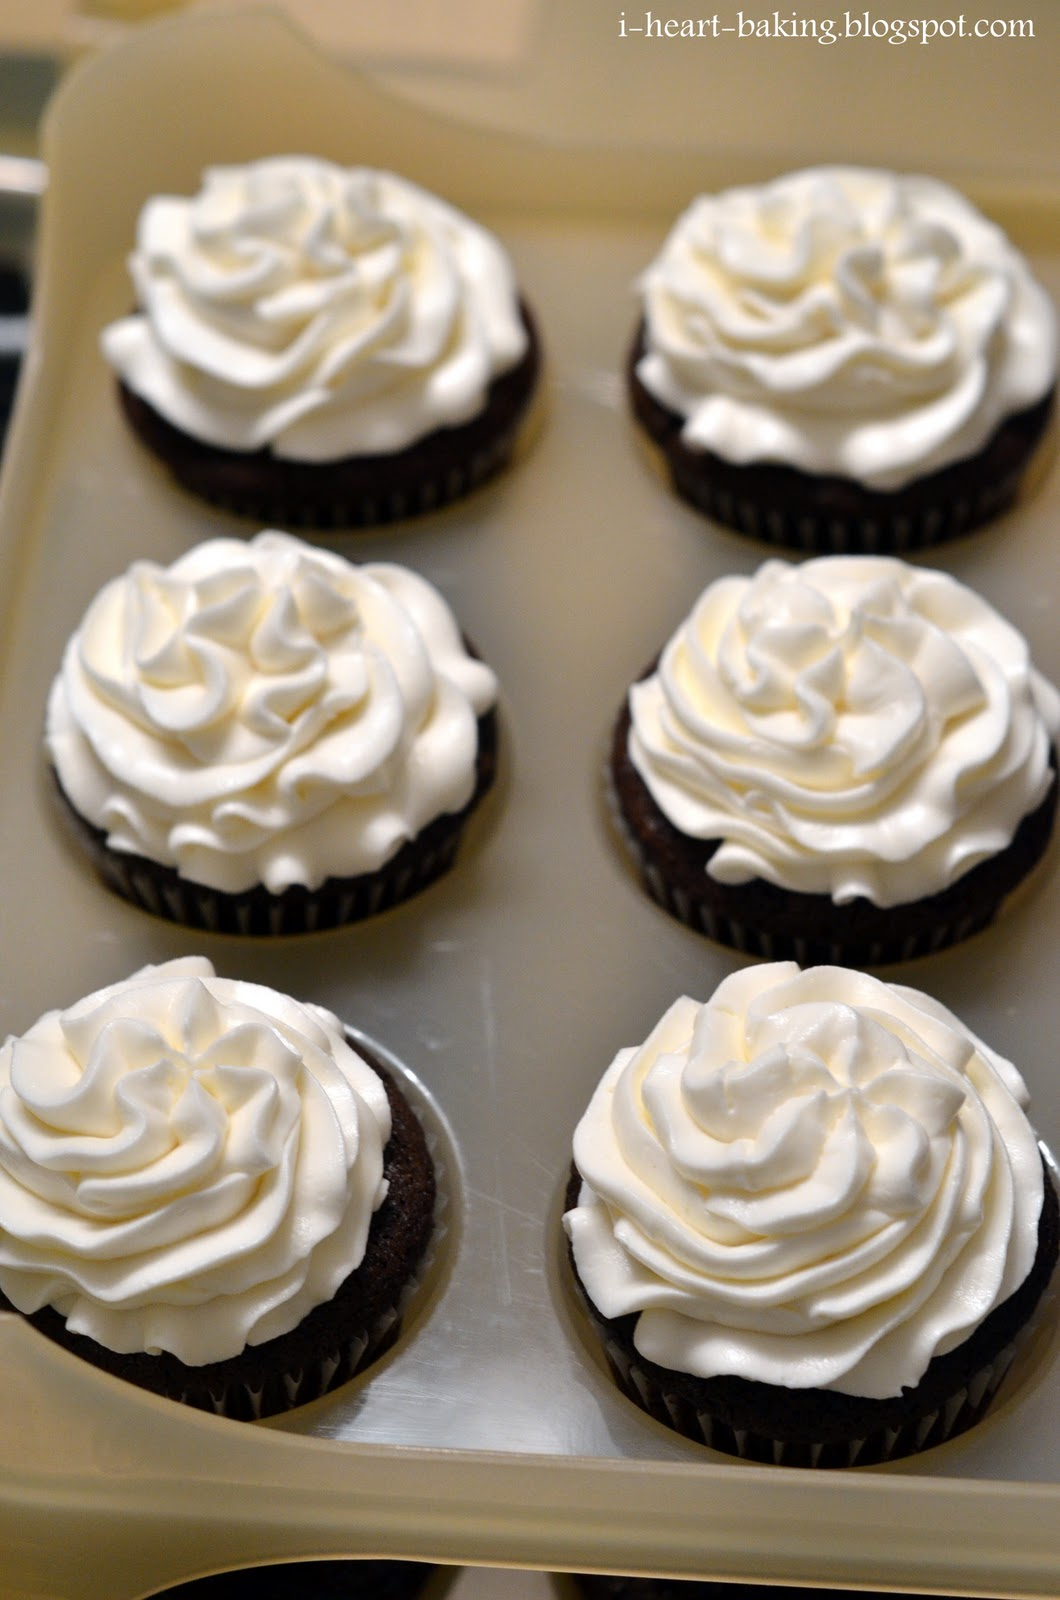 Cupcakes With Whipped Cream Frosting